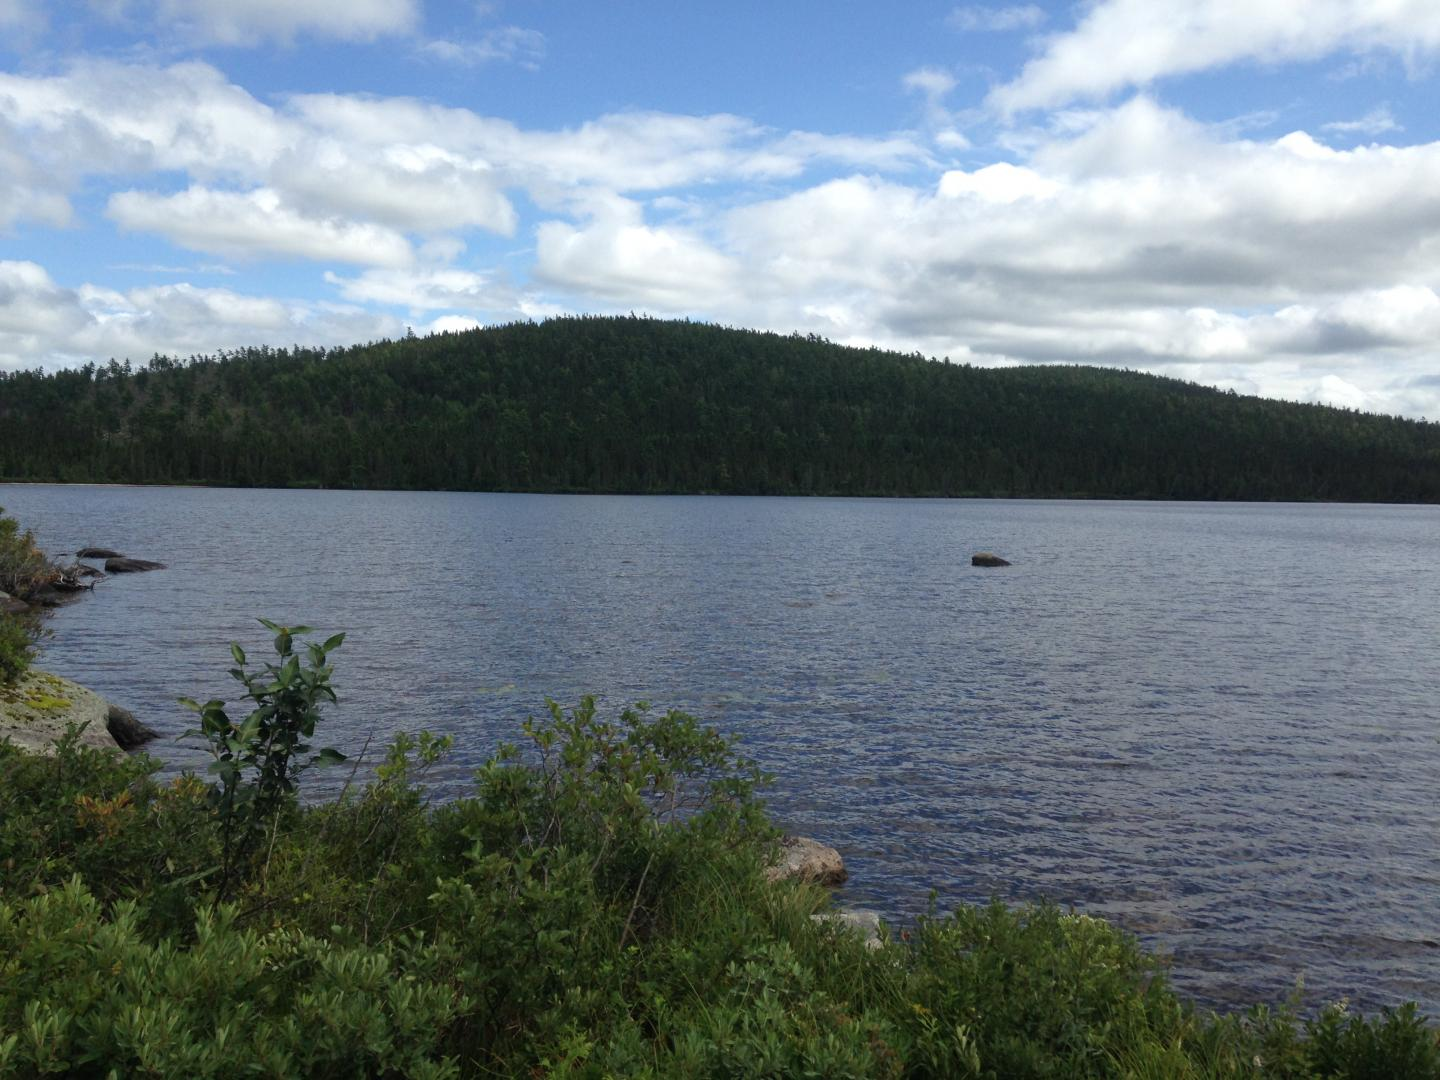 New Study Shows Legacy of DDT to Lake Ecosystems